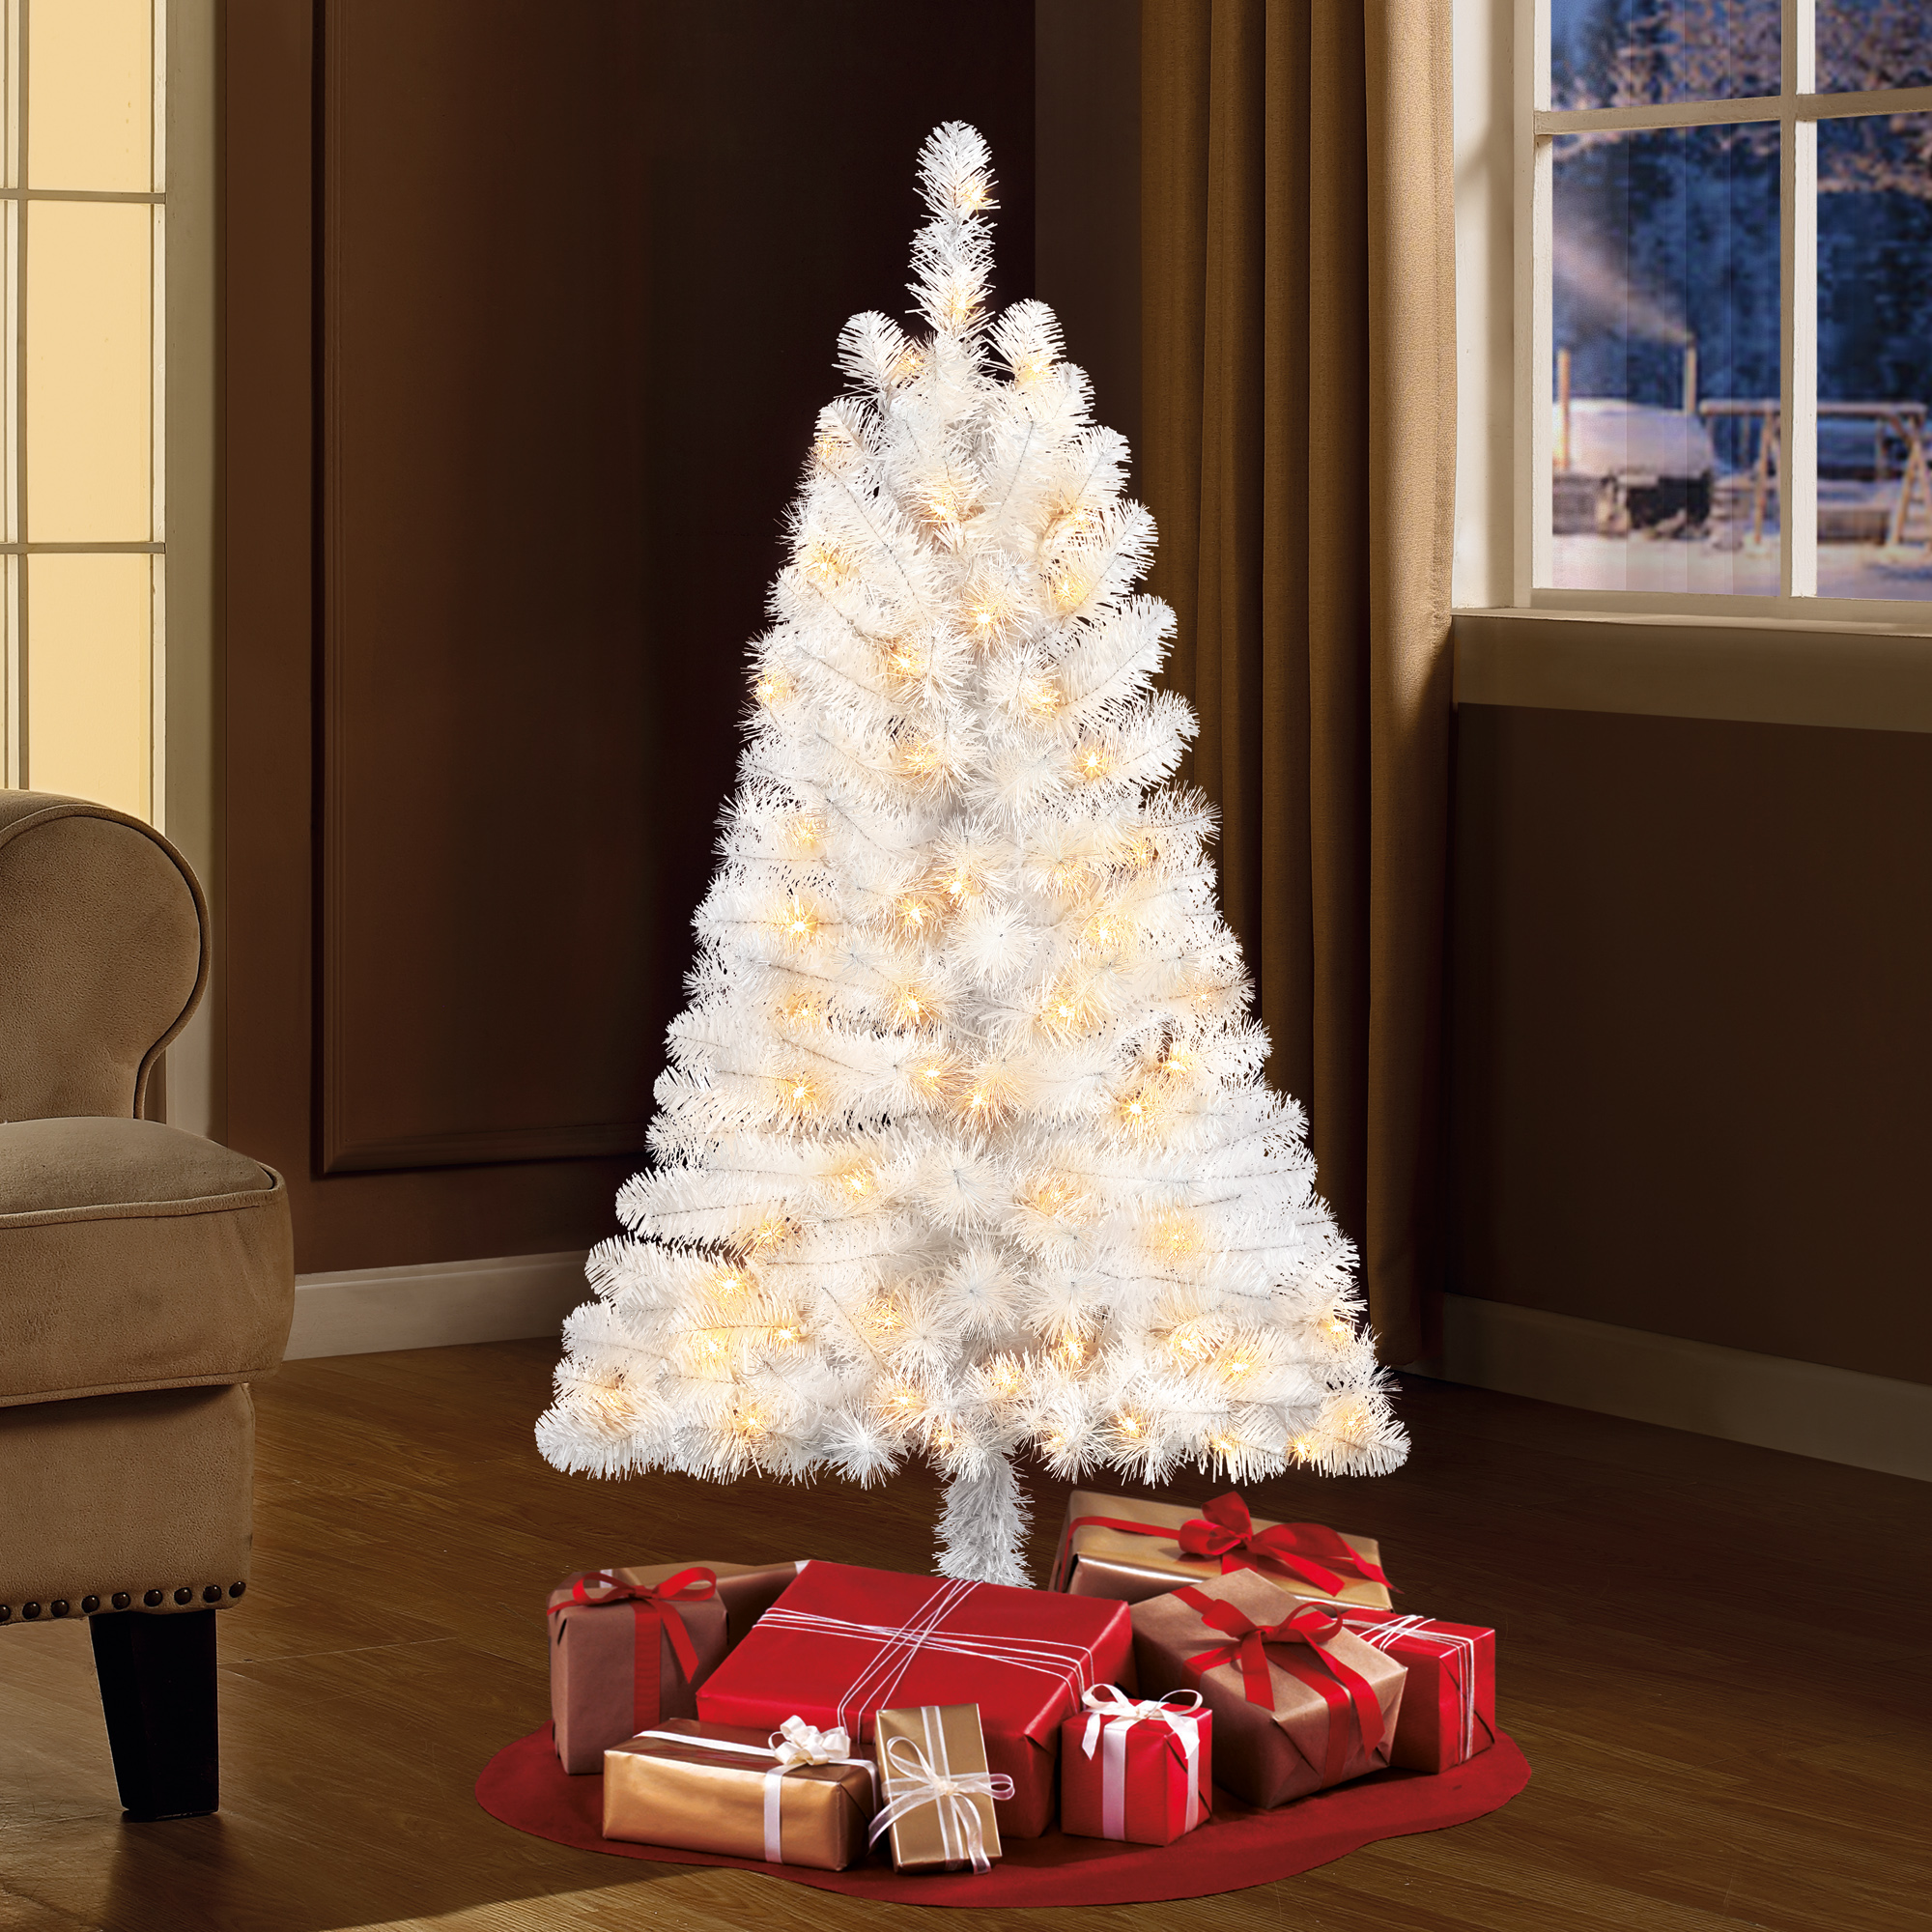 White Christmas tree clearance - Holiday Time Pre-Lit 4' Indiana Spruce White Artificial Christmas Tree